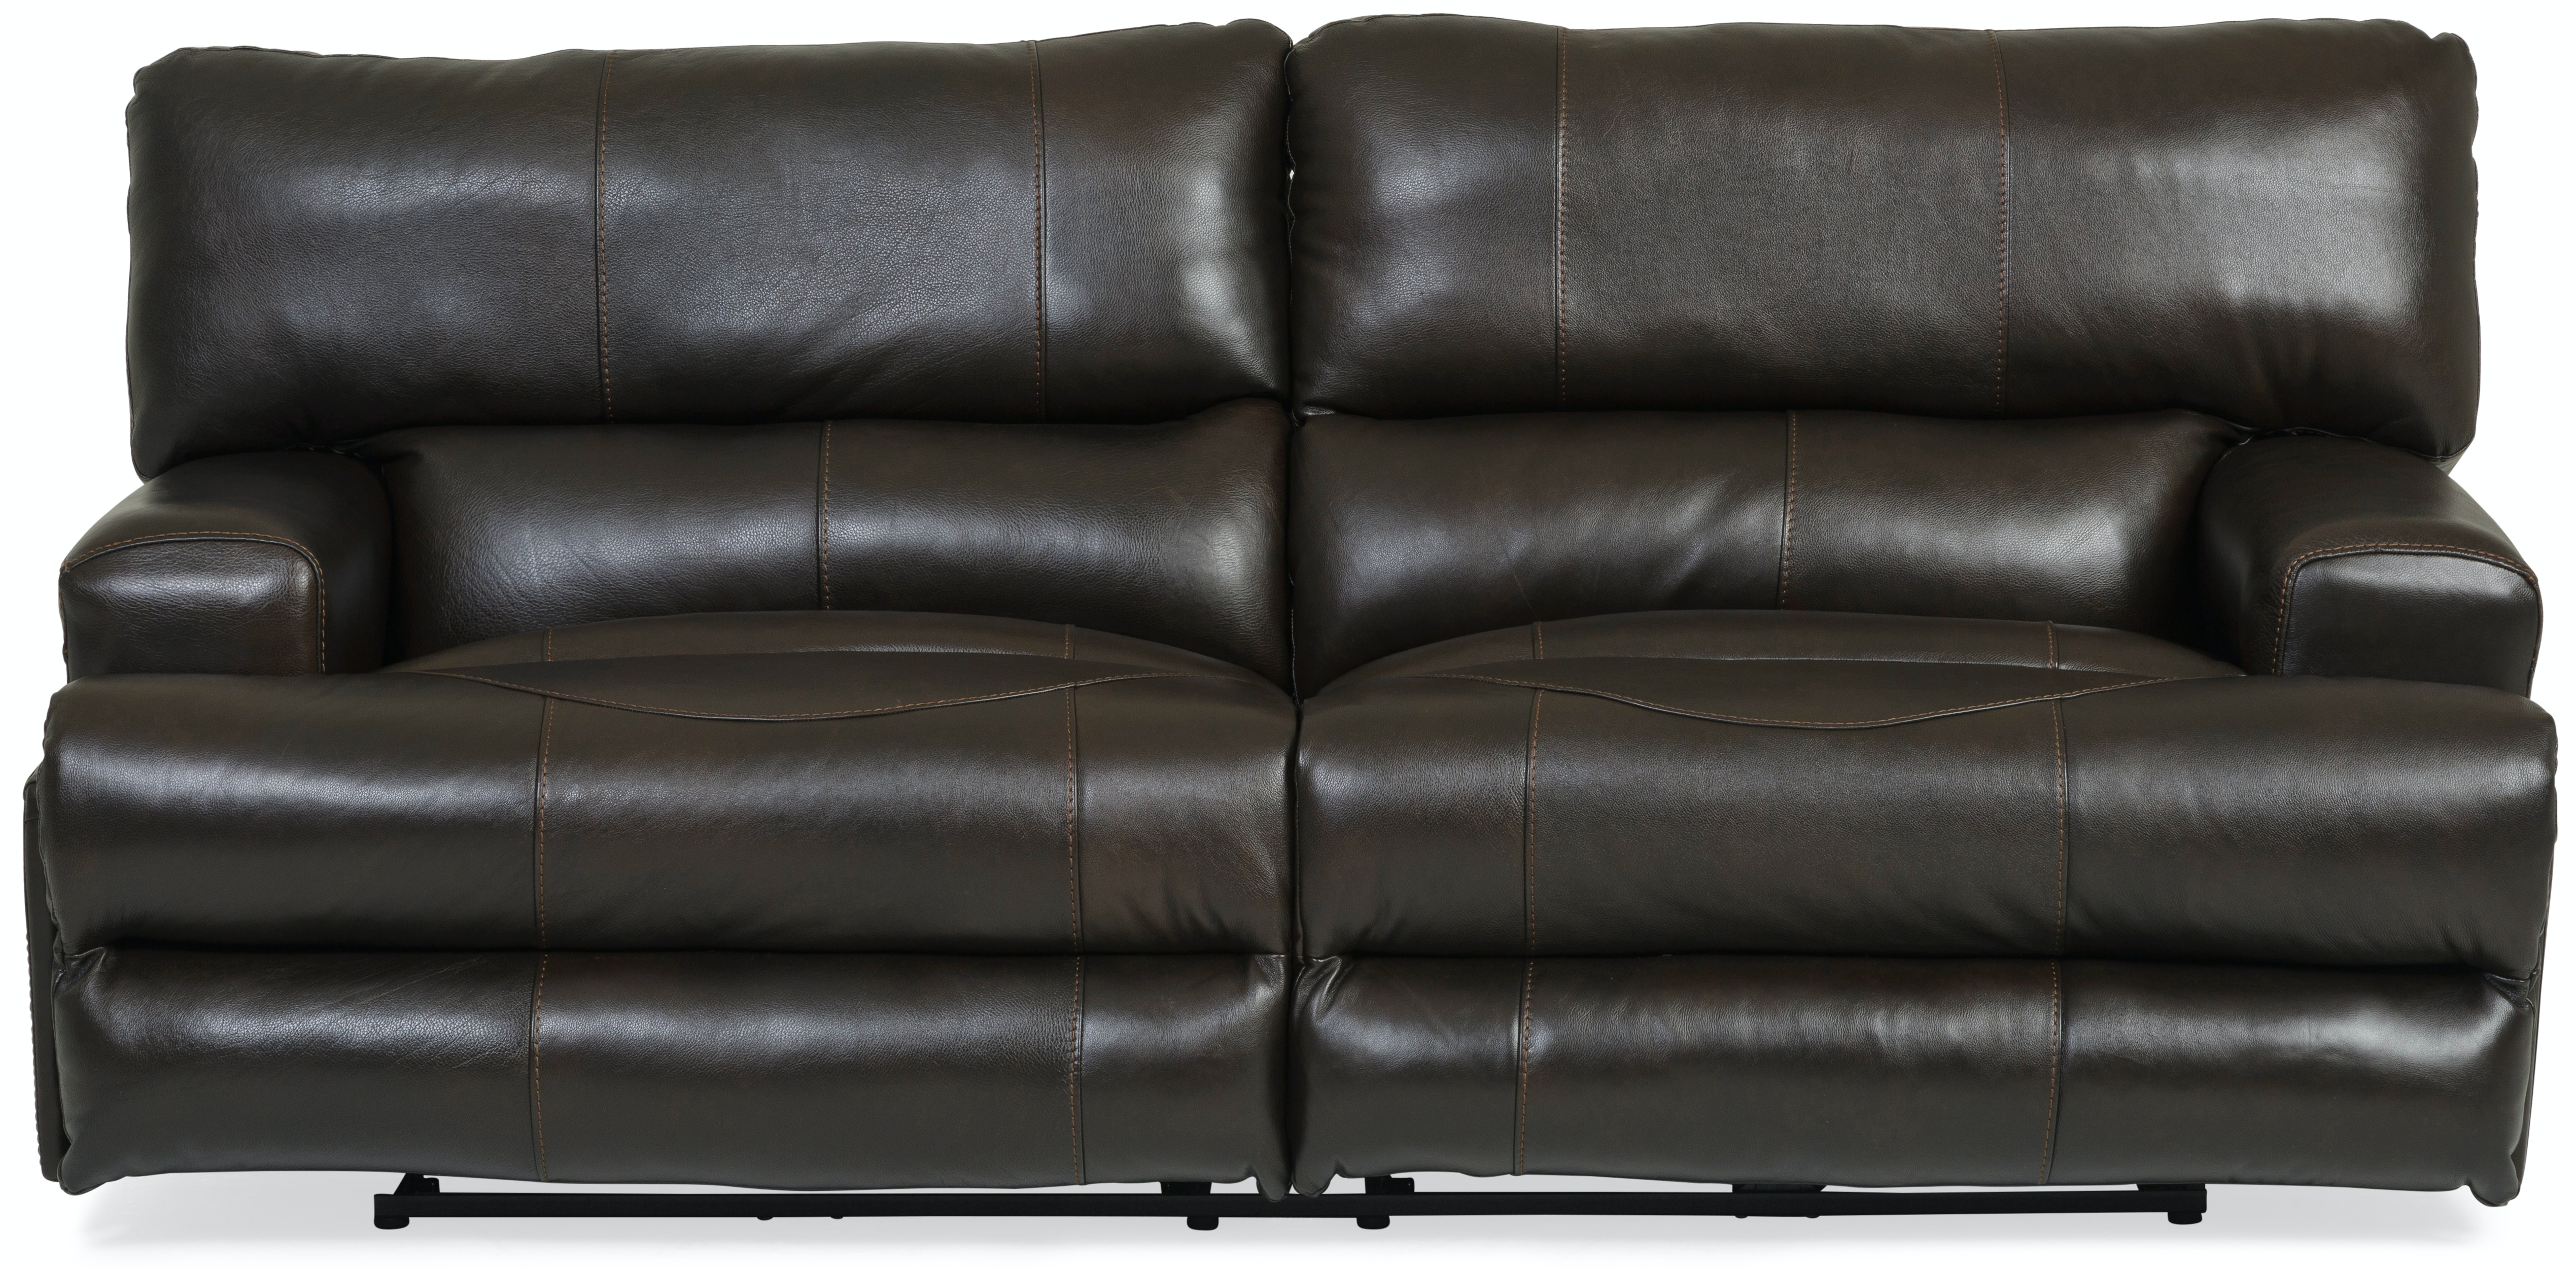 Whiskey Power Reclining Leather Sofa ST:500226